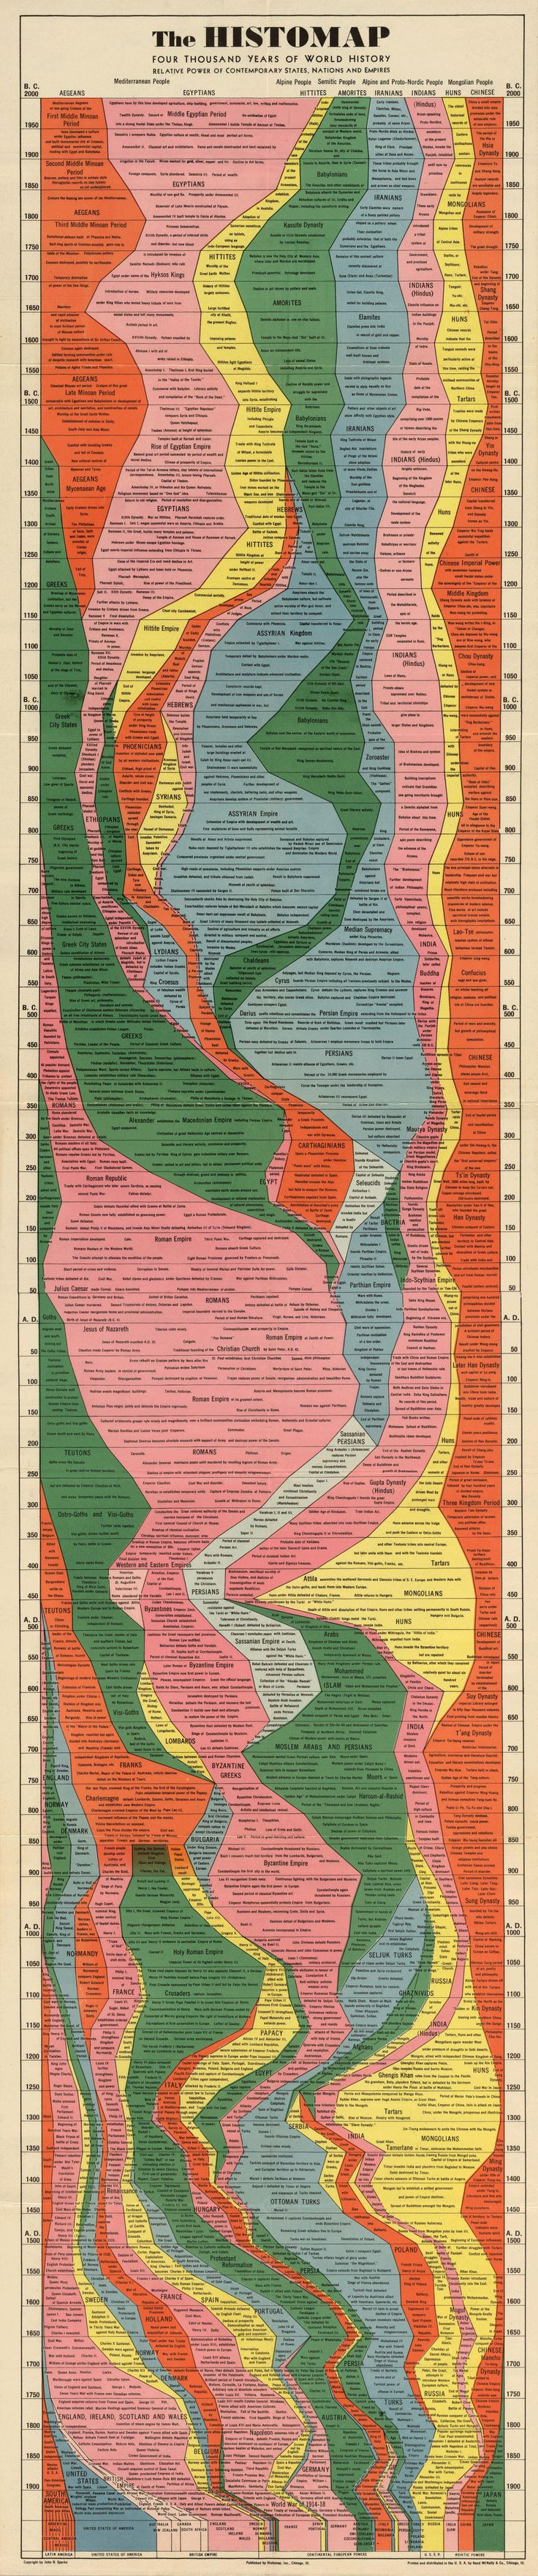 How You Can Turn Traveling the World into Your Job 4,000 Years of World History in One Epic Chart «TwistedSifter